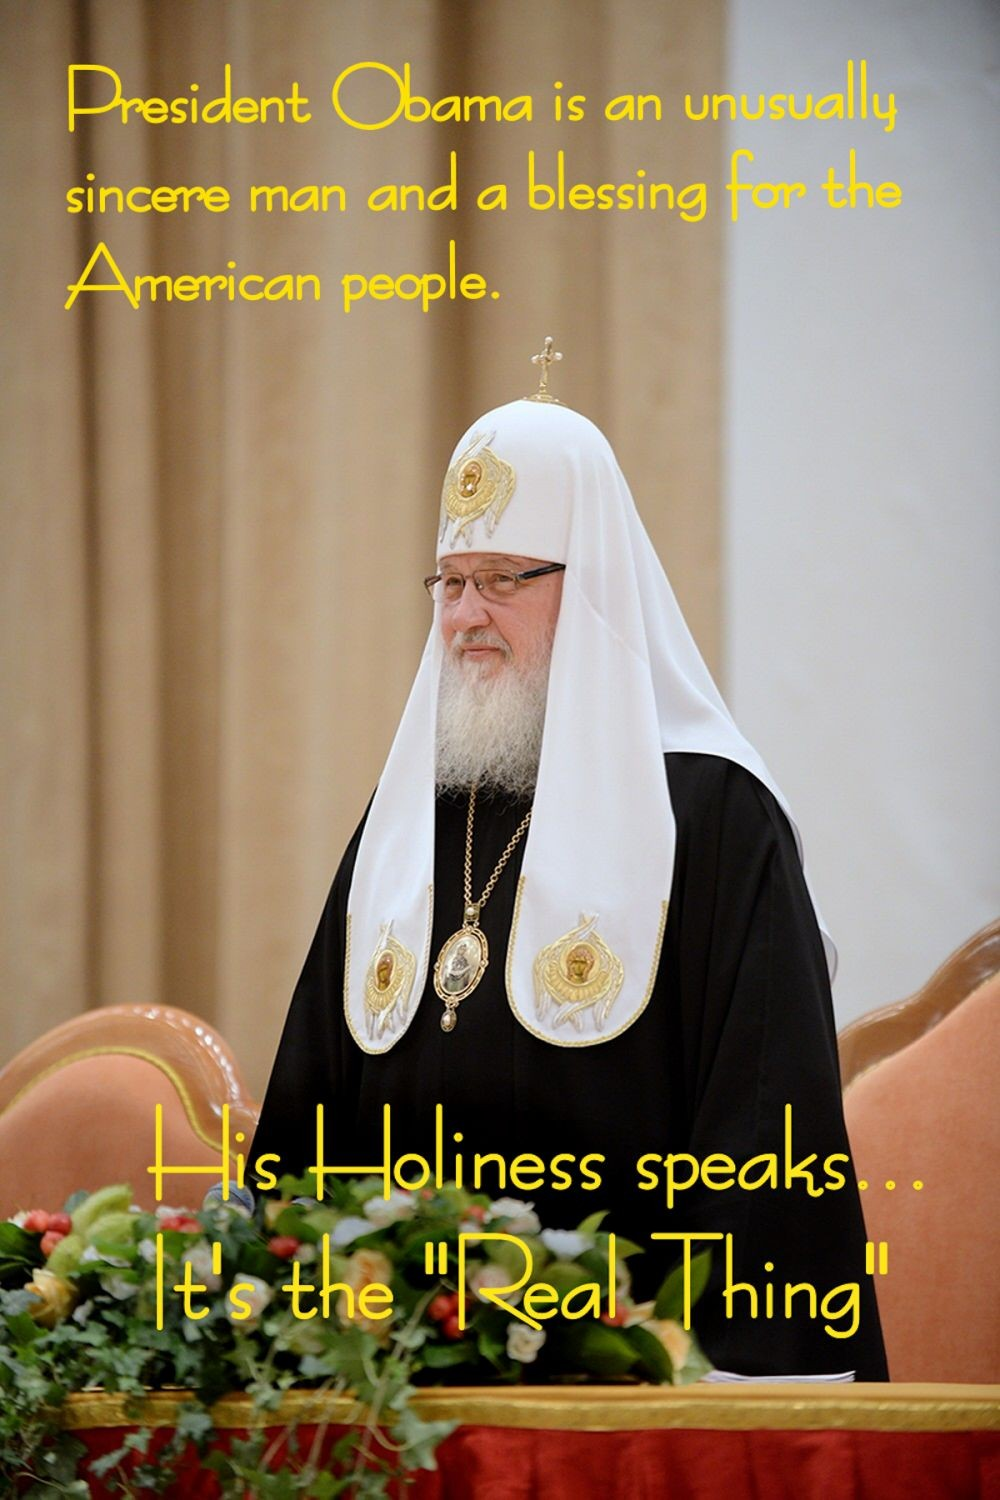 00 09.11 Patriarch Kirill on President Obama